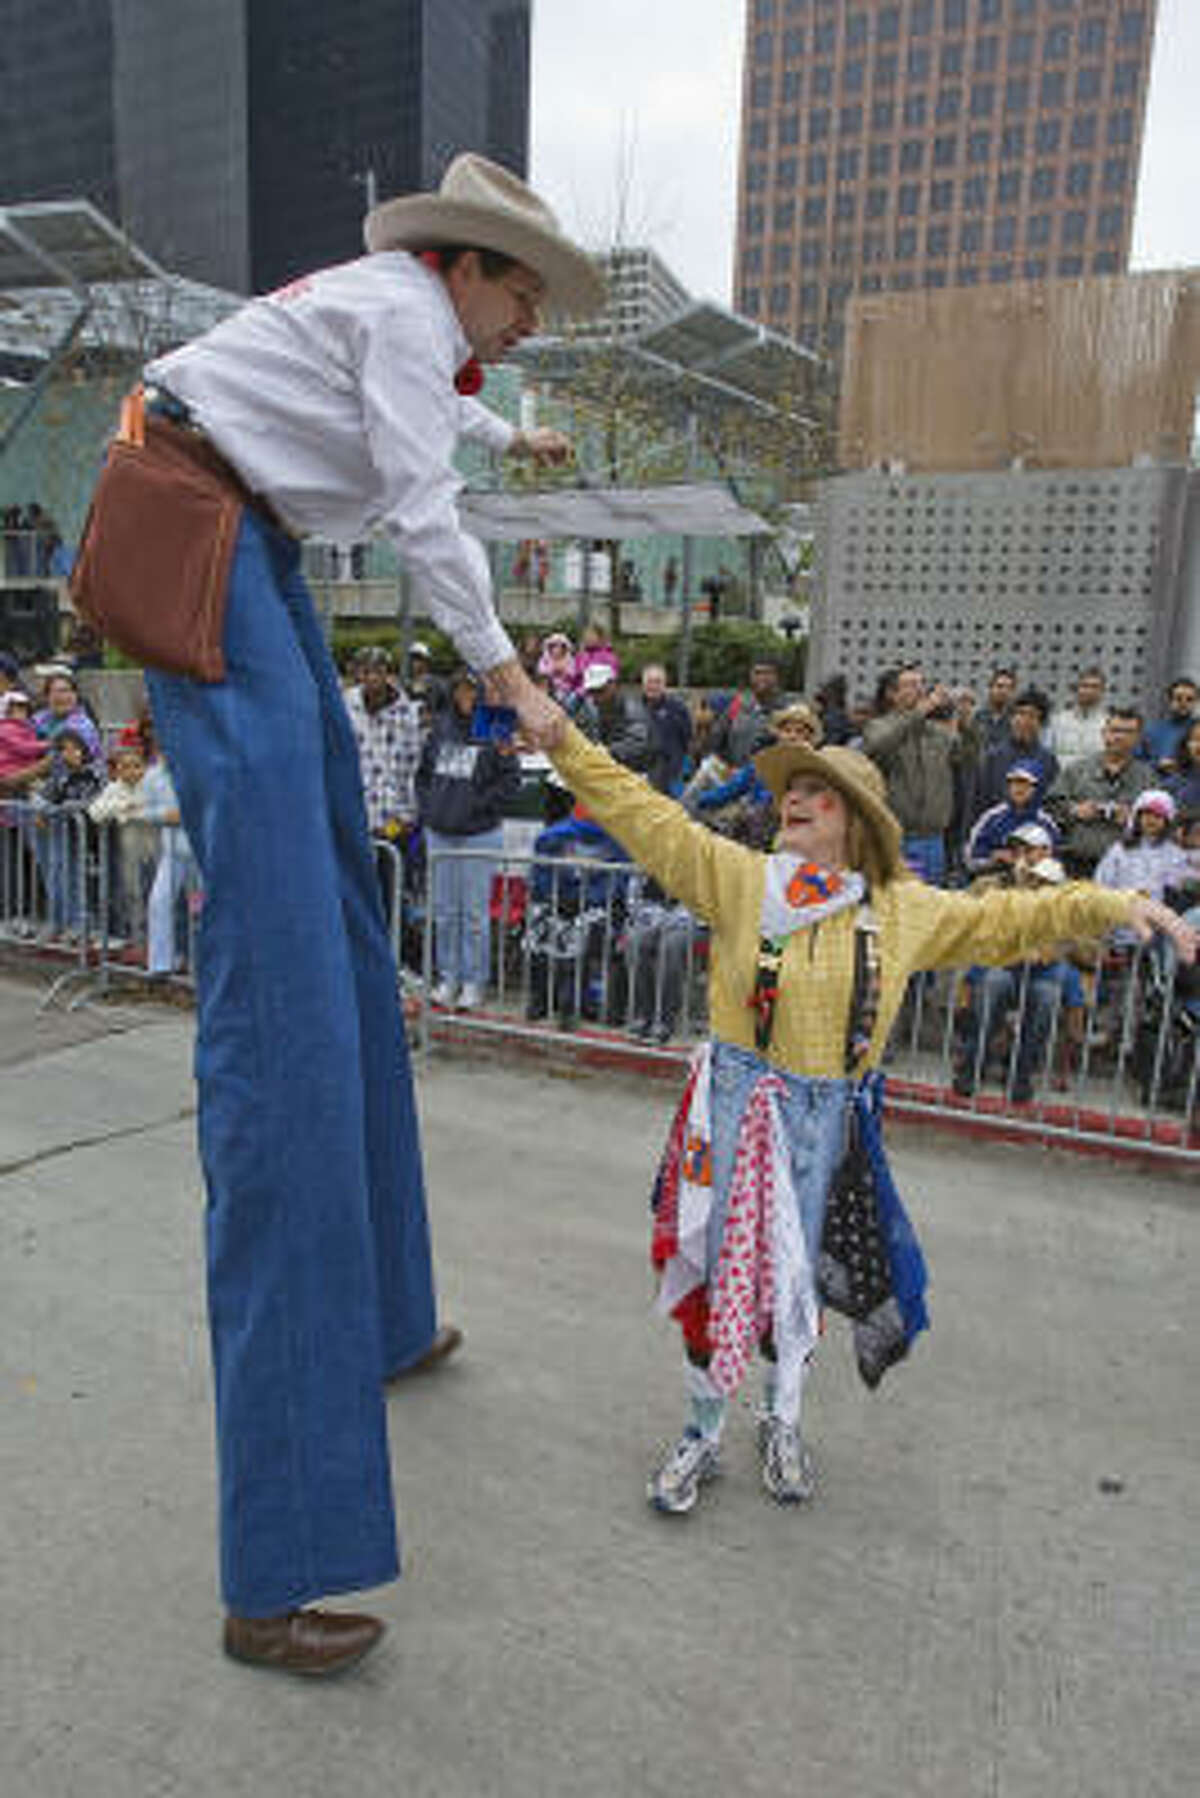 David McCullough, a.k.a. Long Tall Tex, of Tyler, dances with Karen Campbell of Houston along the parade route.